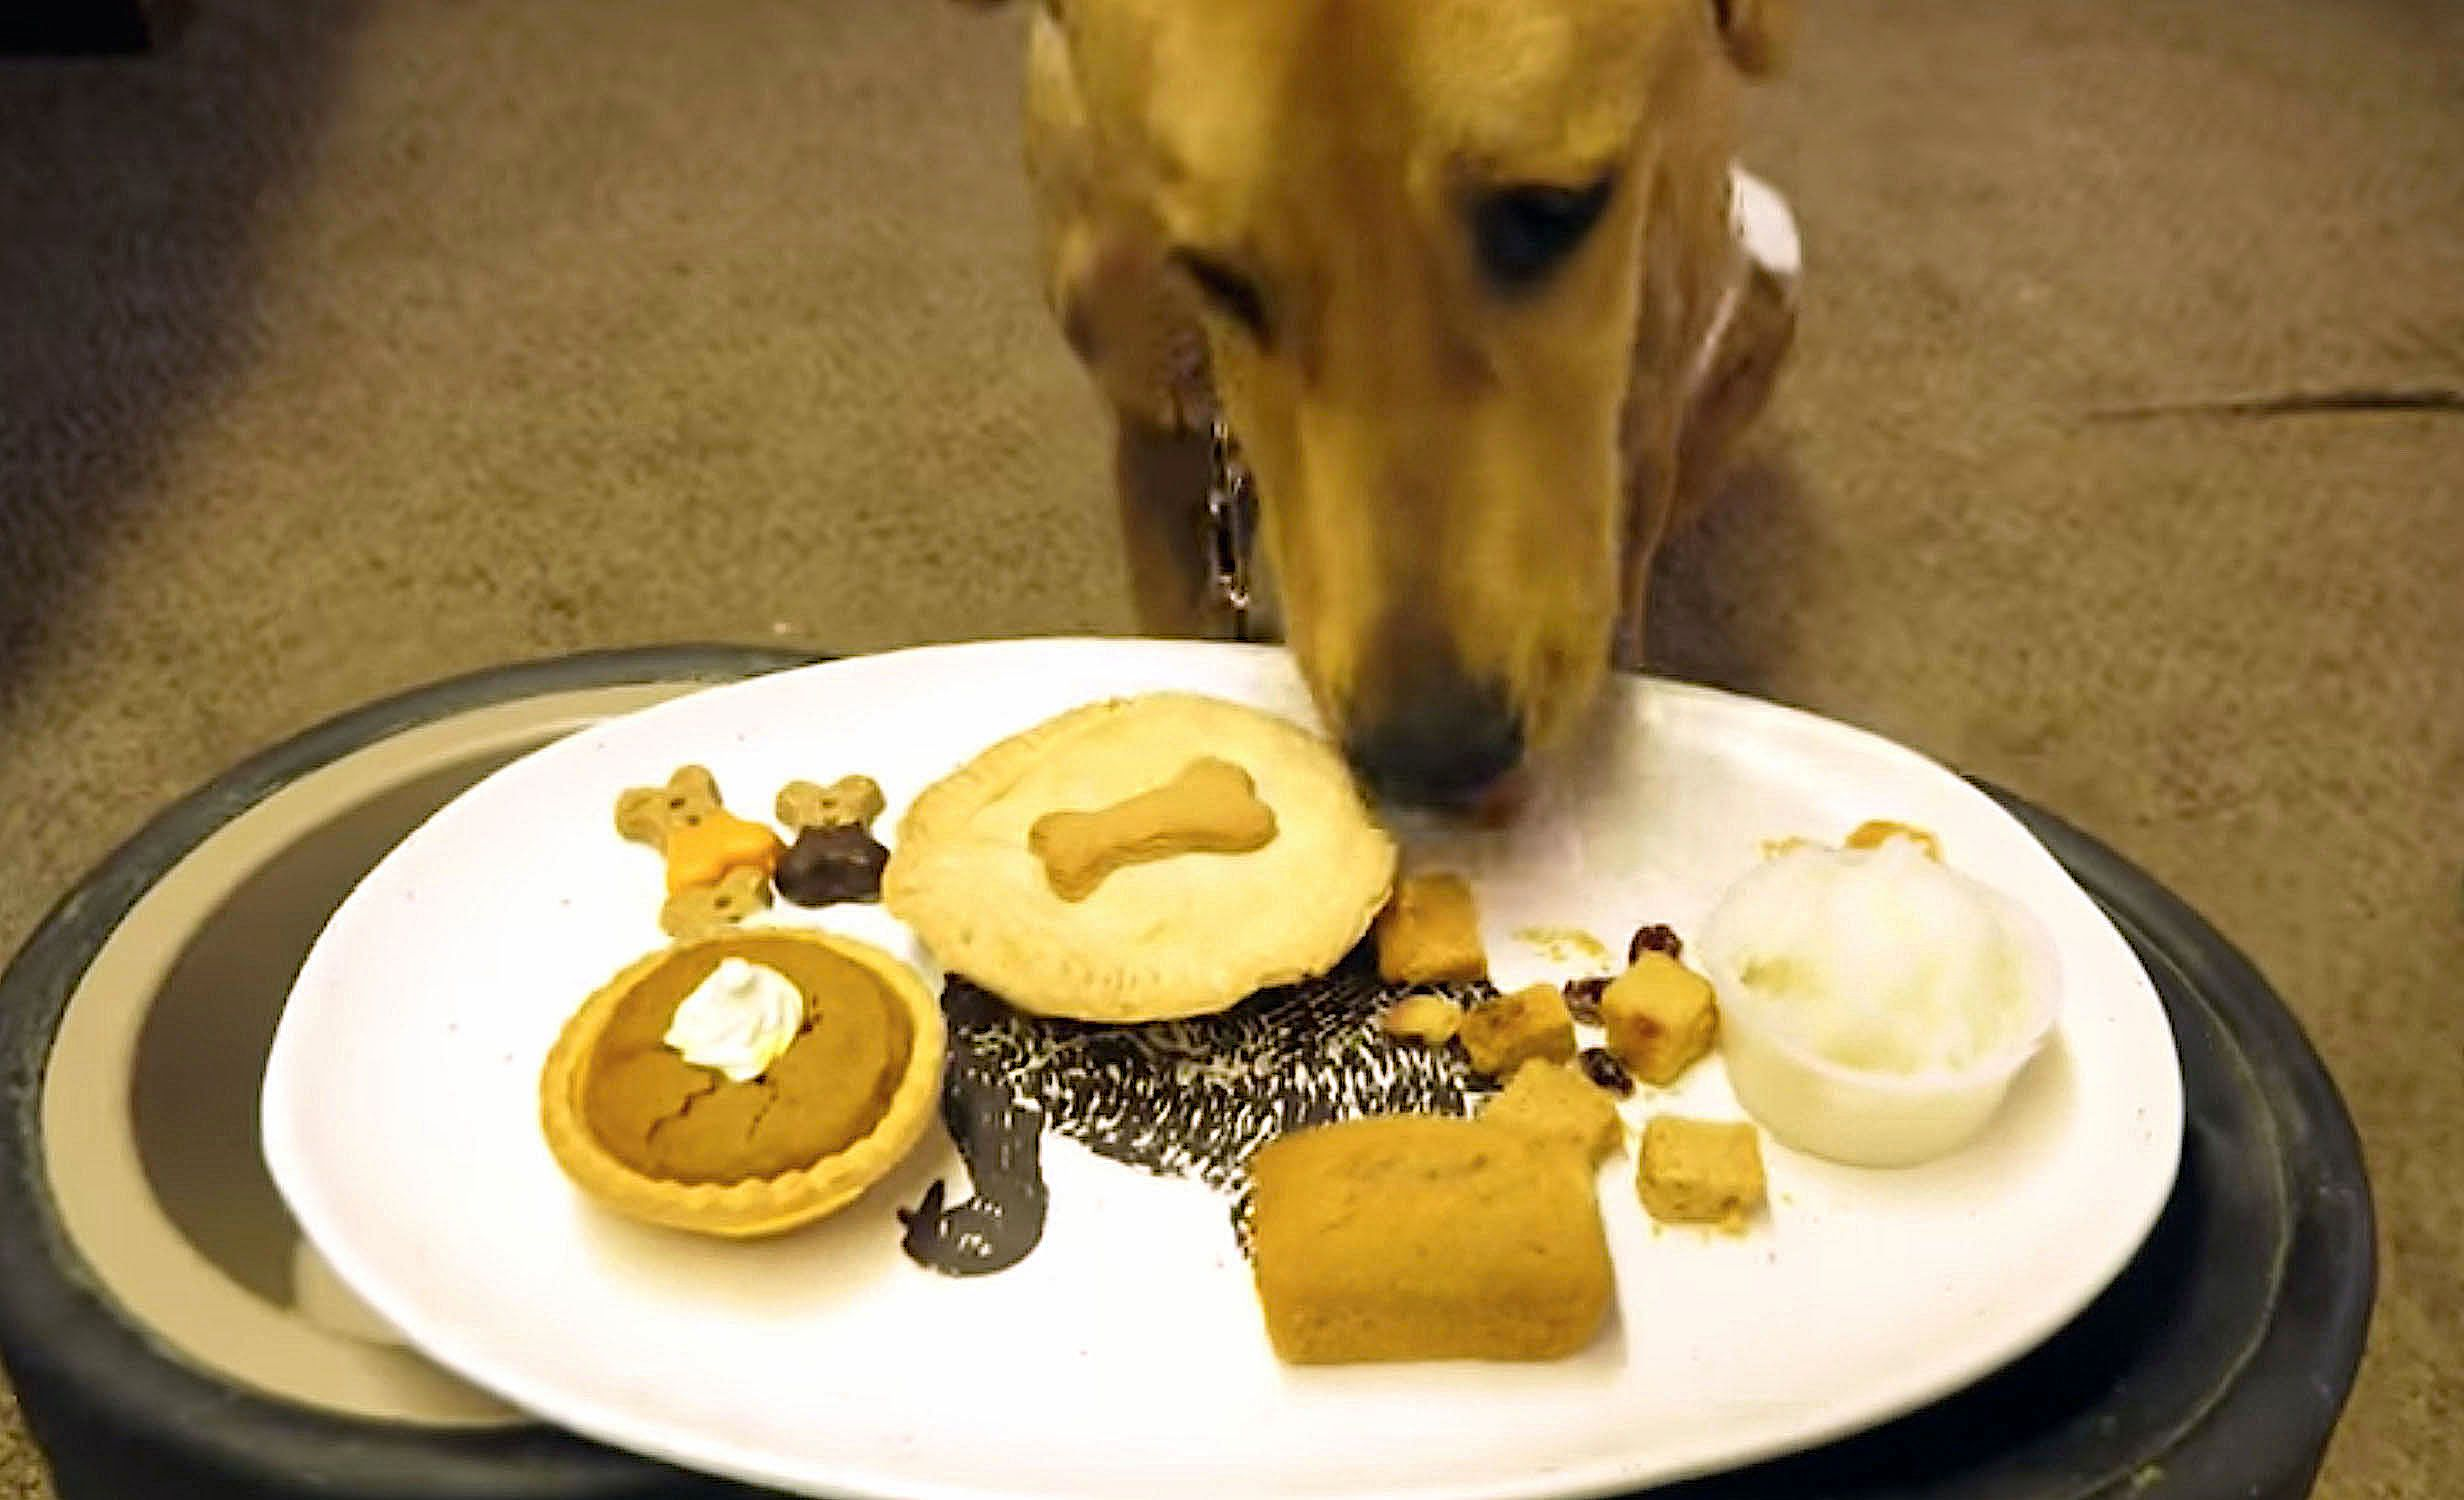 Some animal shelters provide special Thanksgiving dinners for their resident dogs.